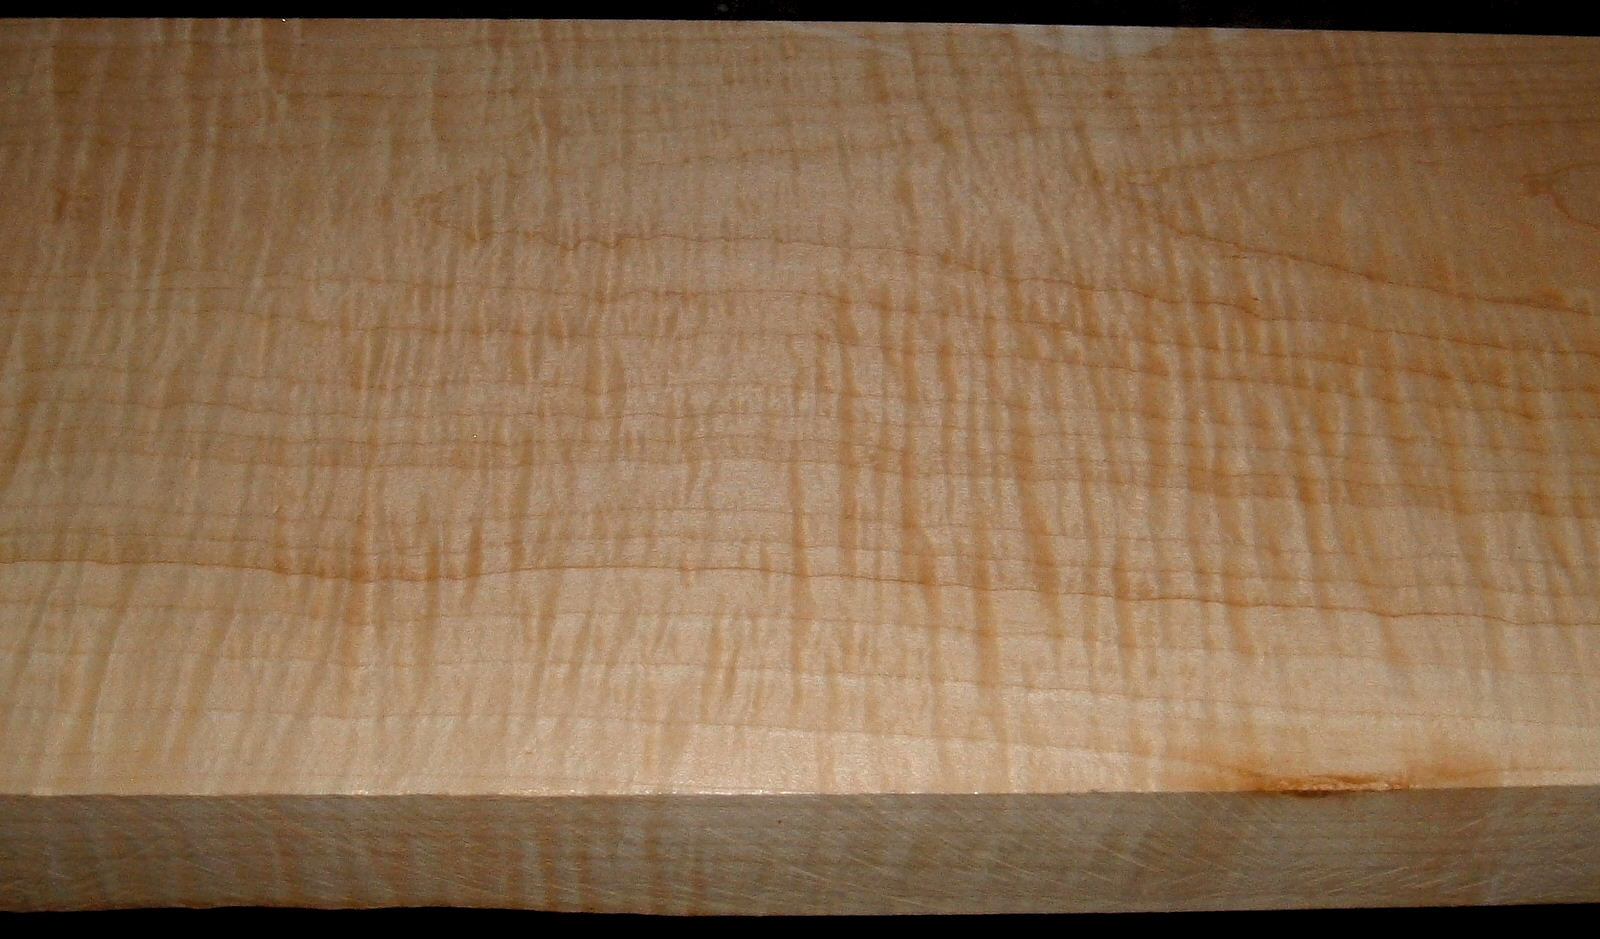 M1912-571J,L, 1-7/8x8-5/8x50, Curly Tiger Maple